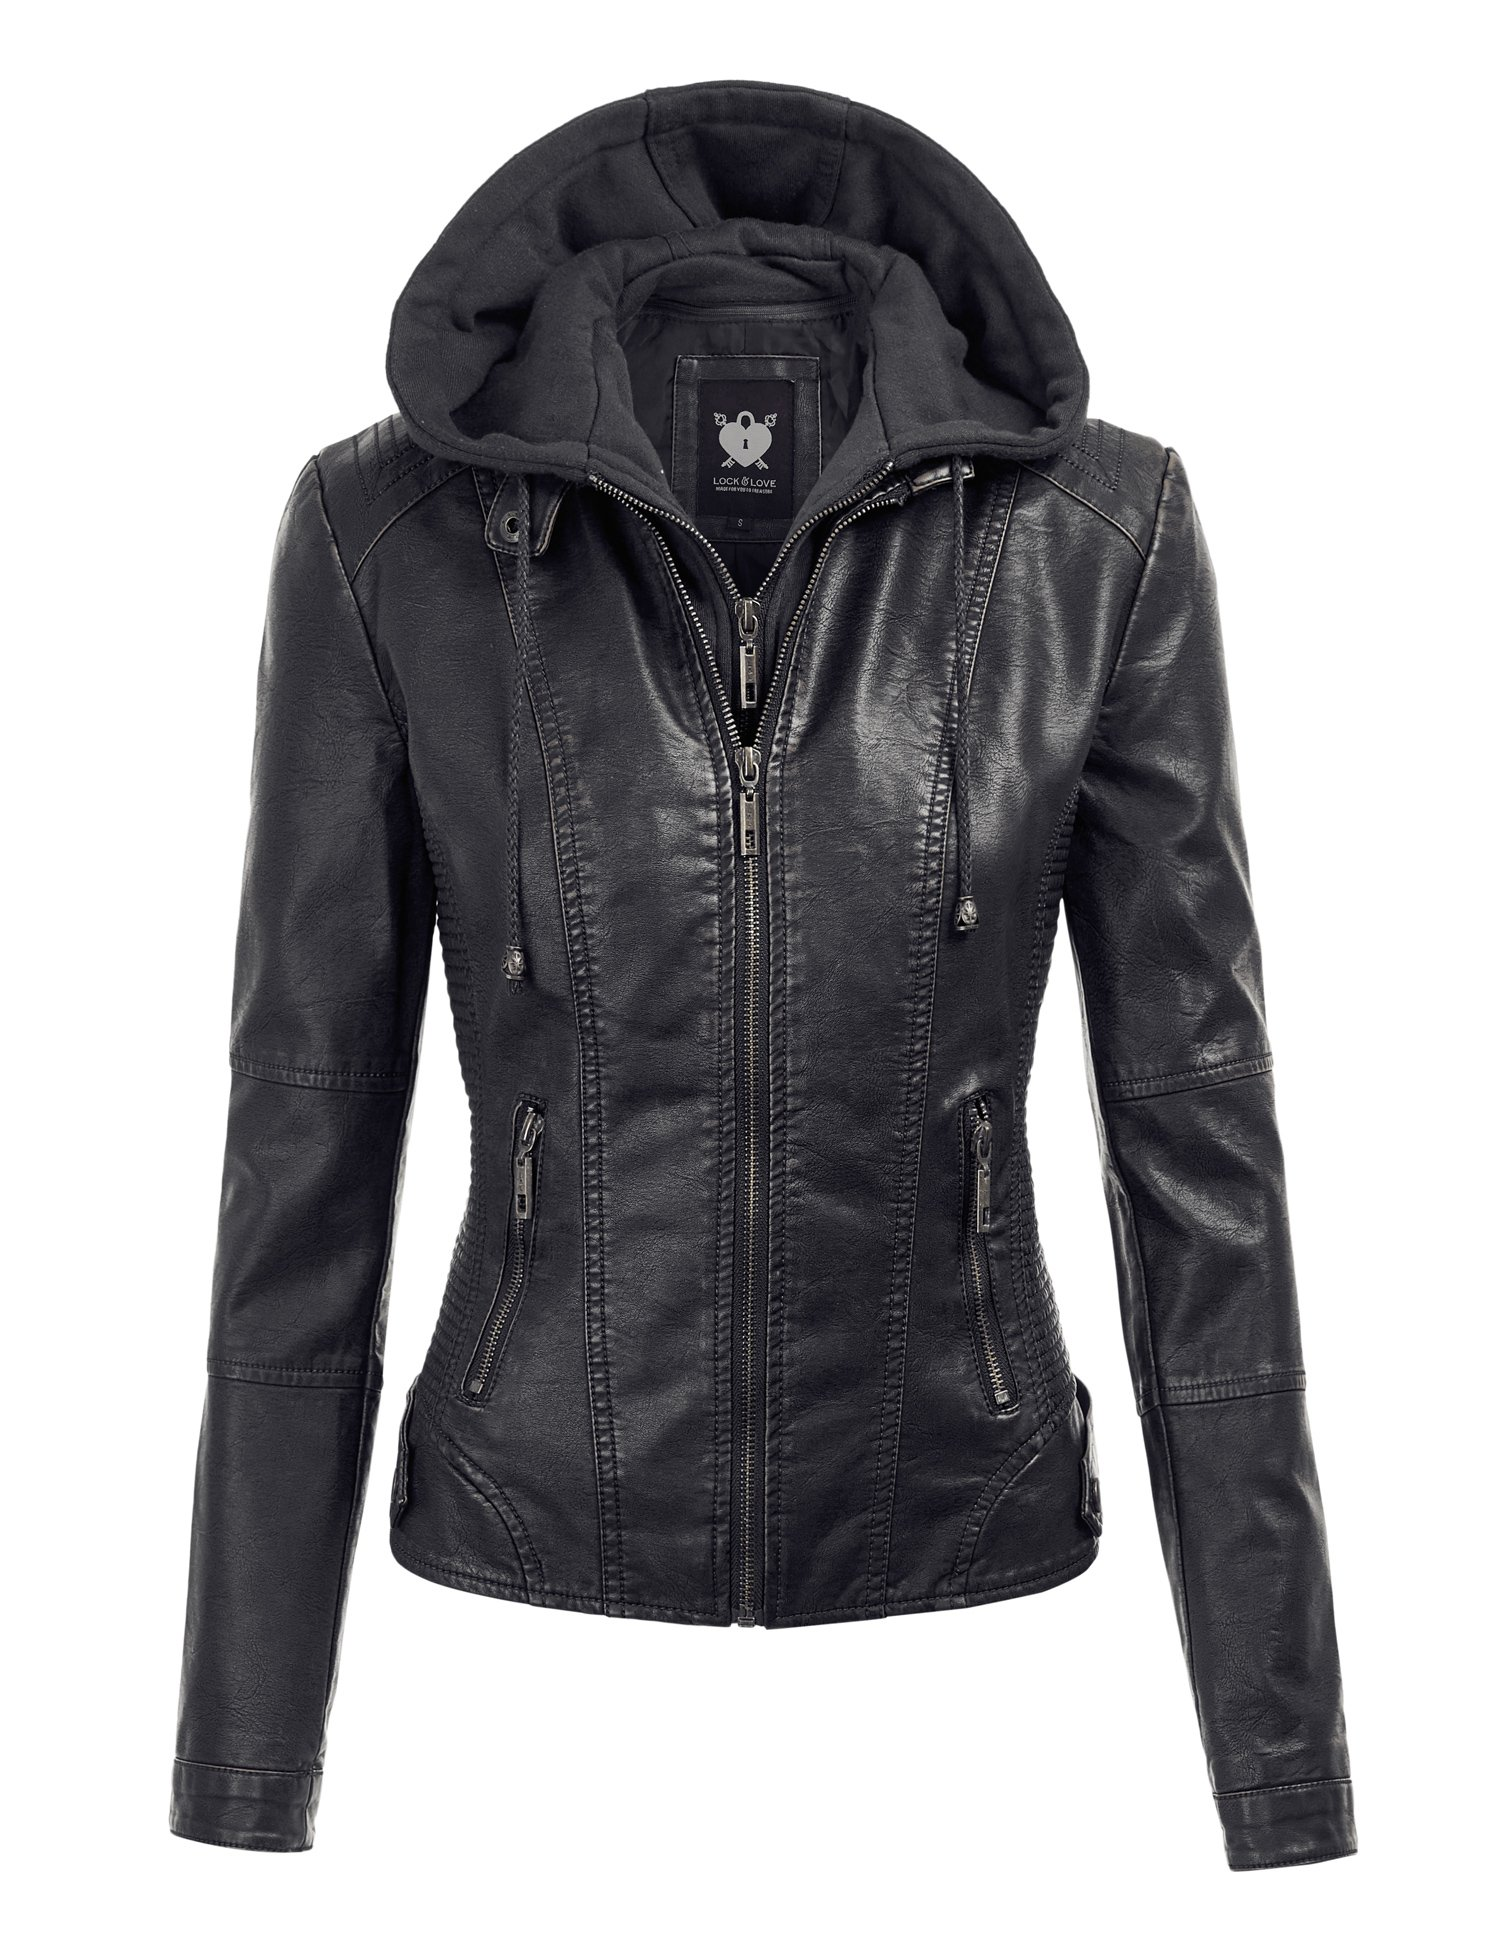 Lock and Love LL WJC1044 Womens Faux Leather Quilted Motorcycle Jacket with Hoodie M Black